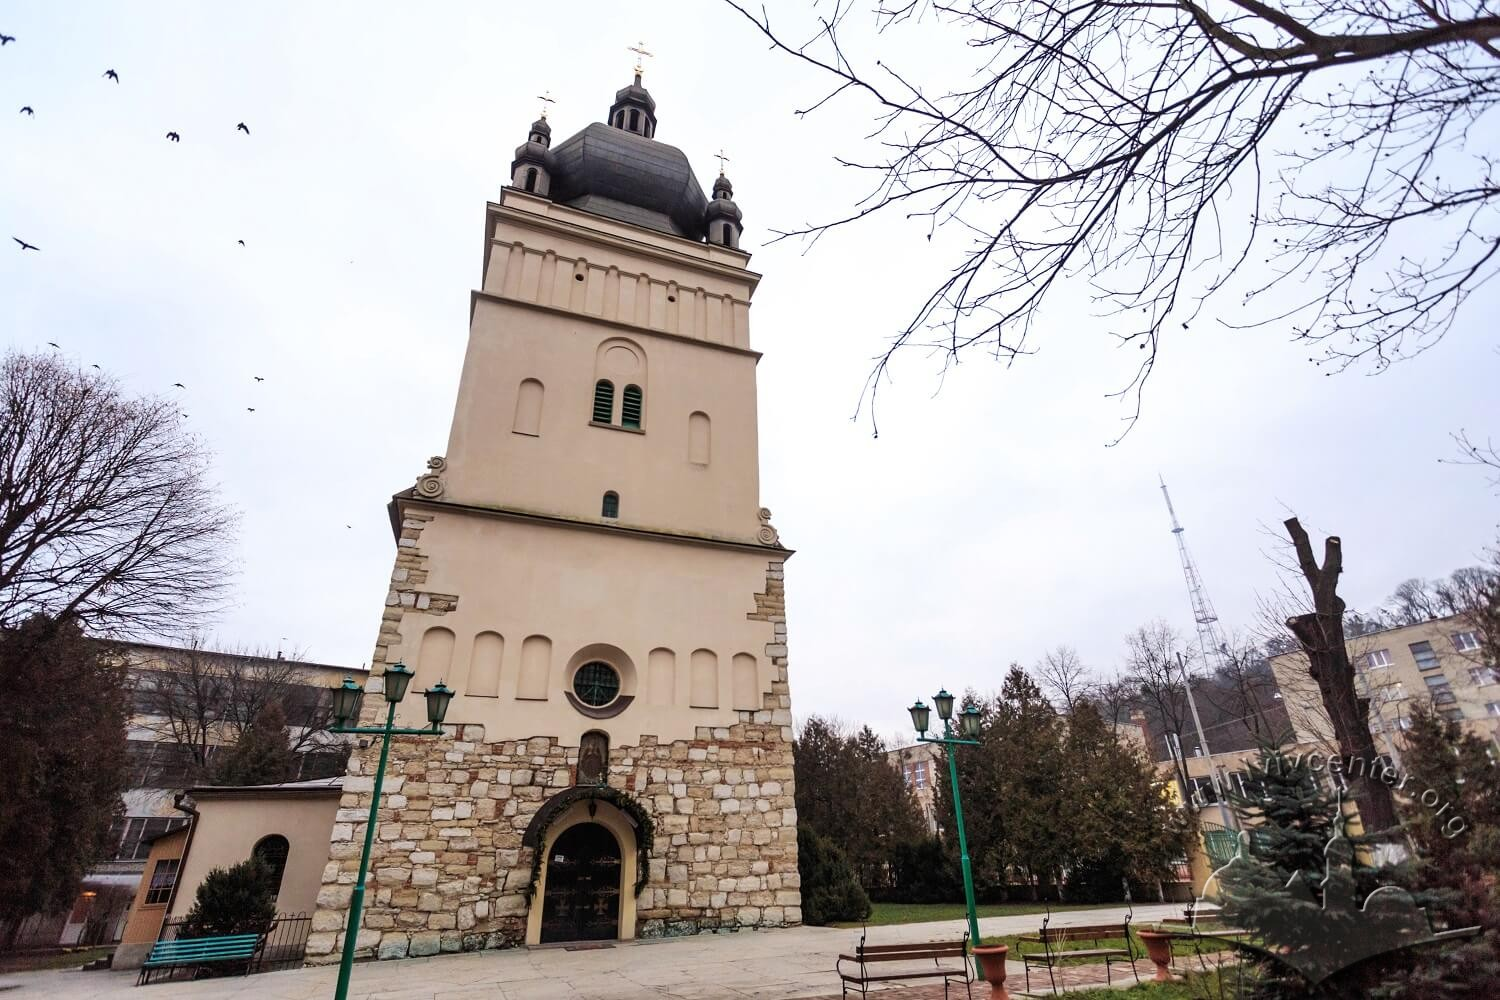 Vul. Khmelnytskoho, 77. The church's tower. On the right, on the background, the Television tower on top of High Castle hill is seen/Photo courtesy of Nazarii Parkhomyk, 2015